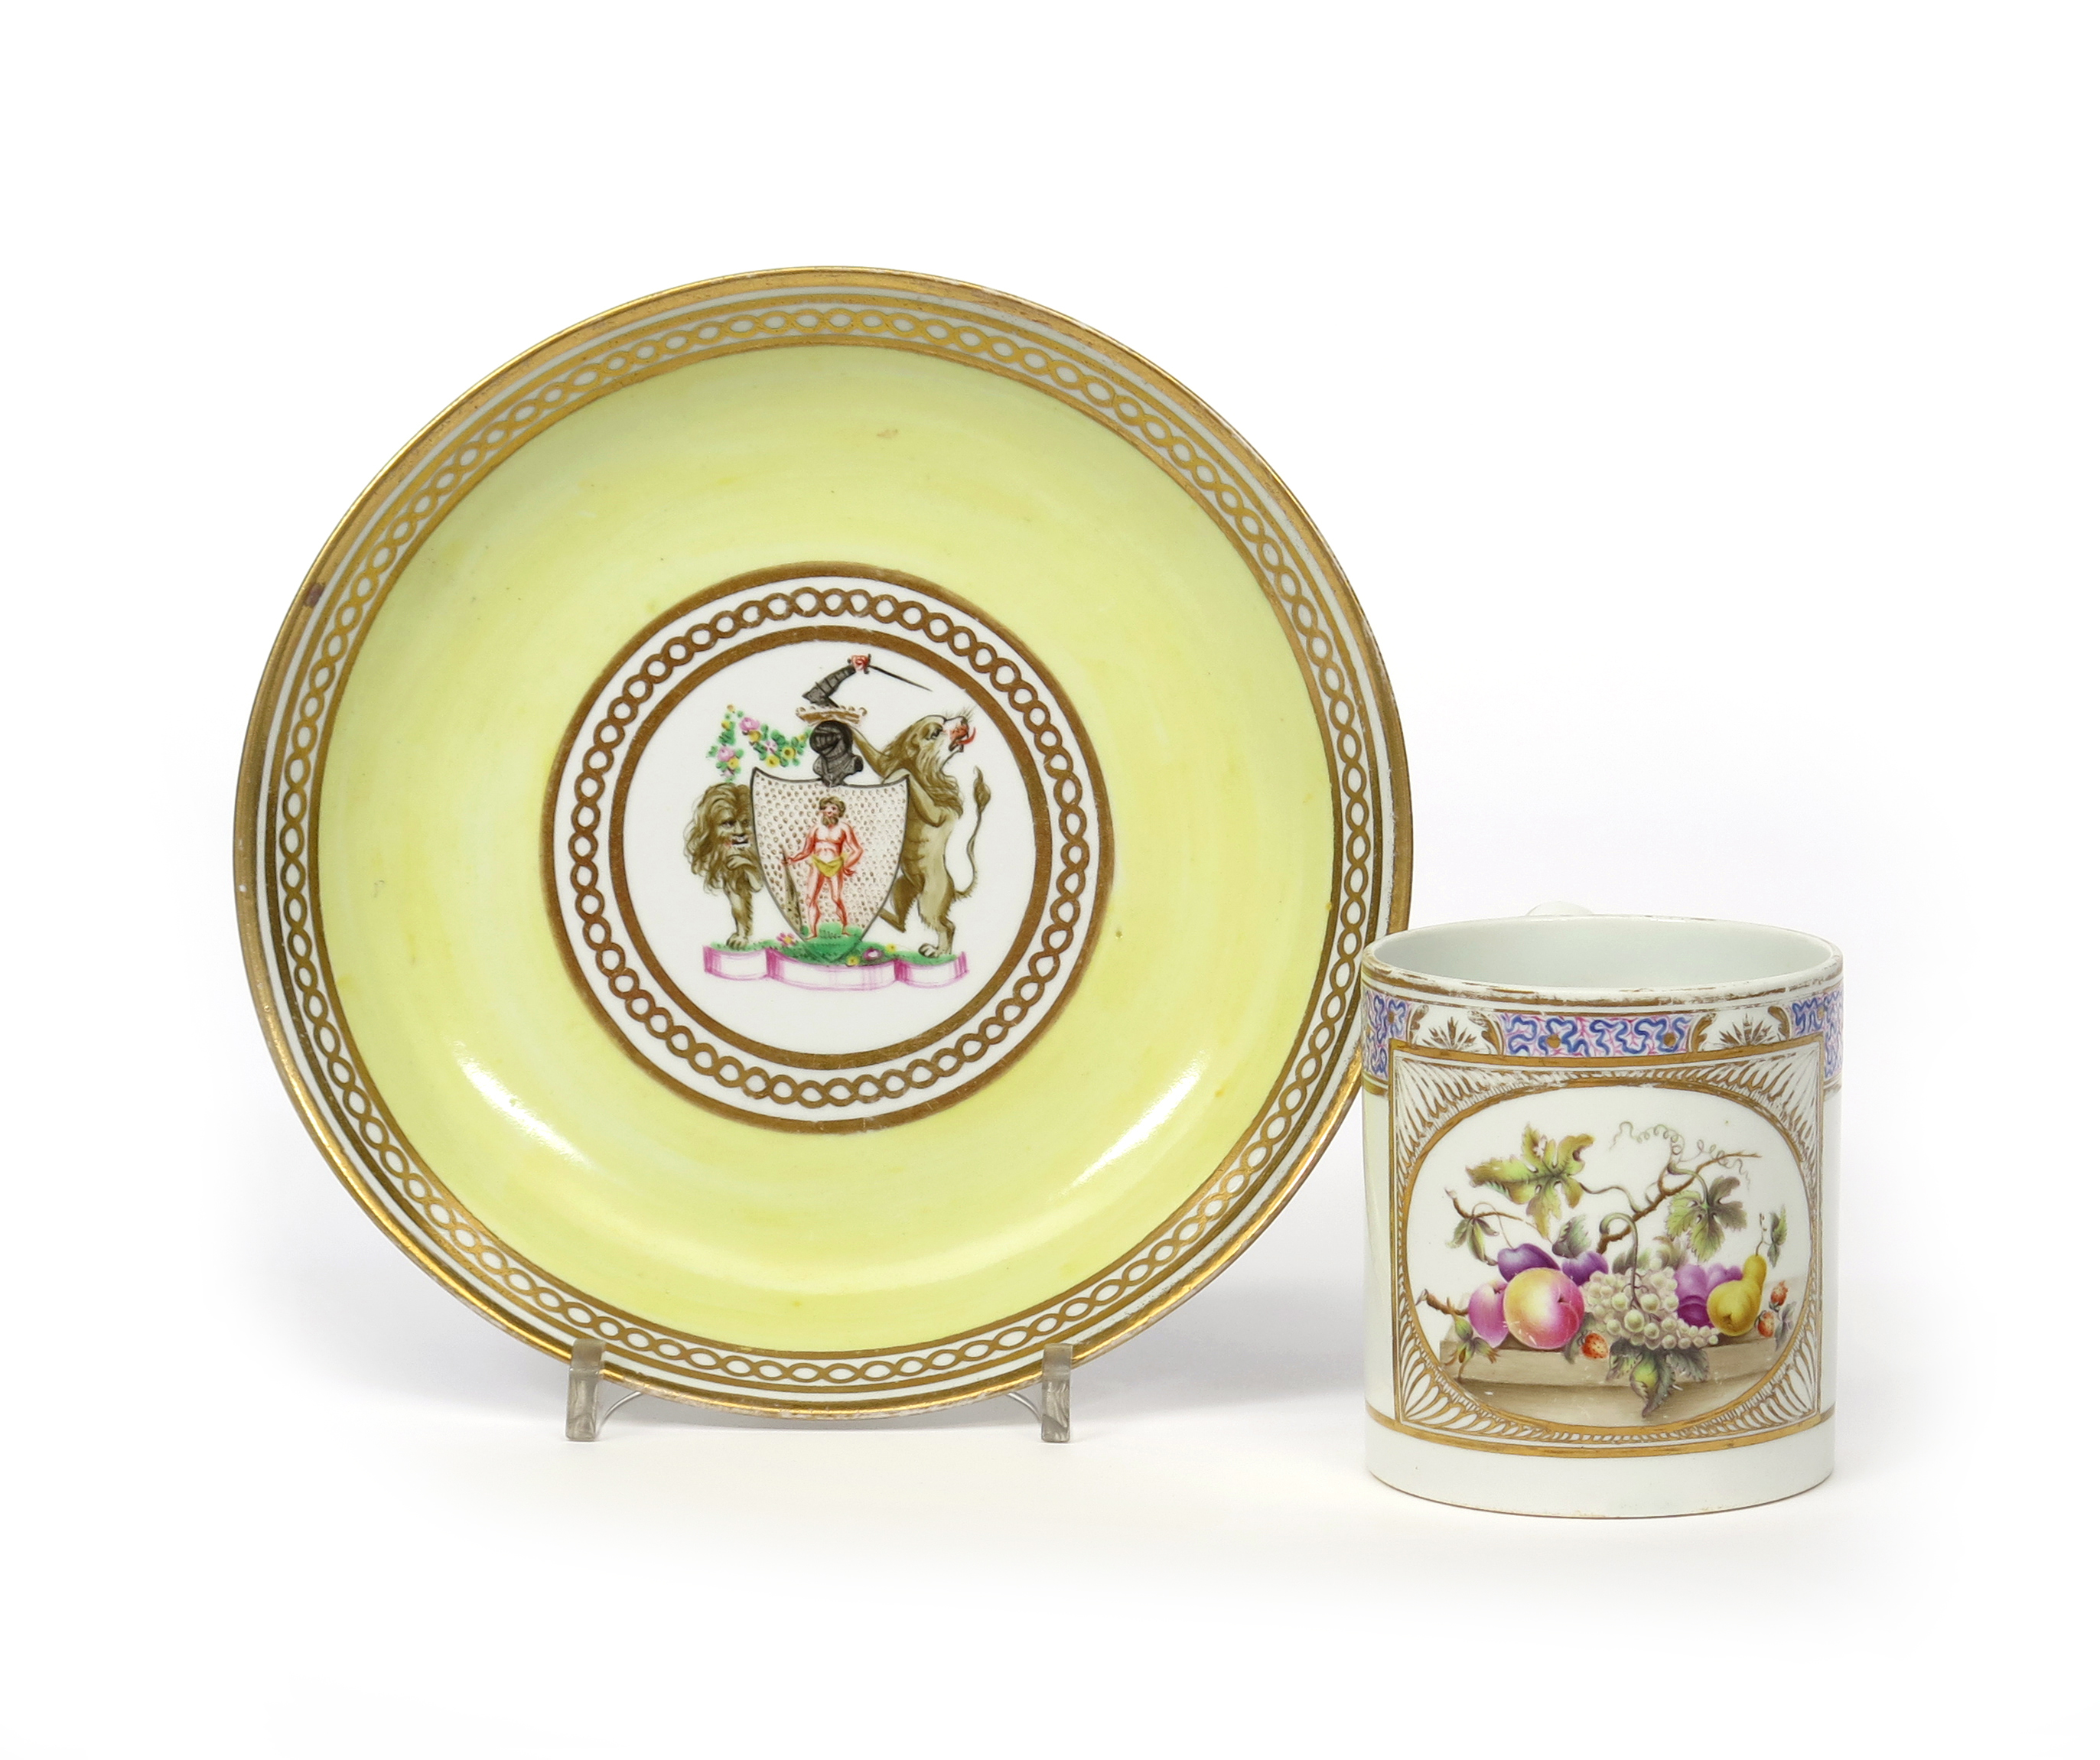 Auction   Fine Porcelain and Pottery at 12.12.2012   LotSearch